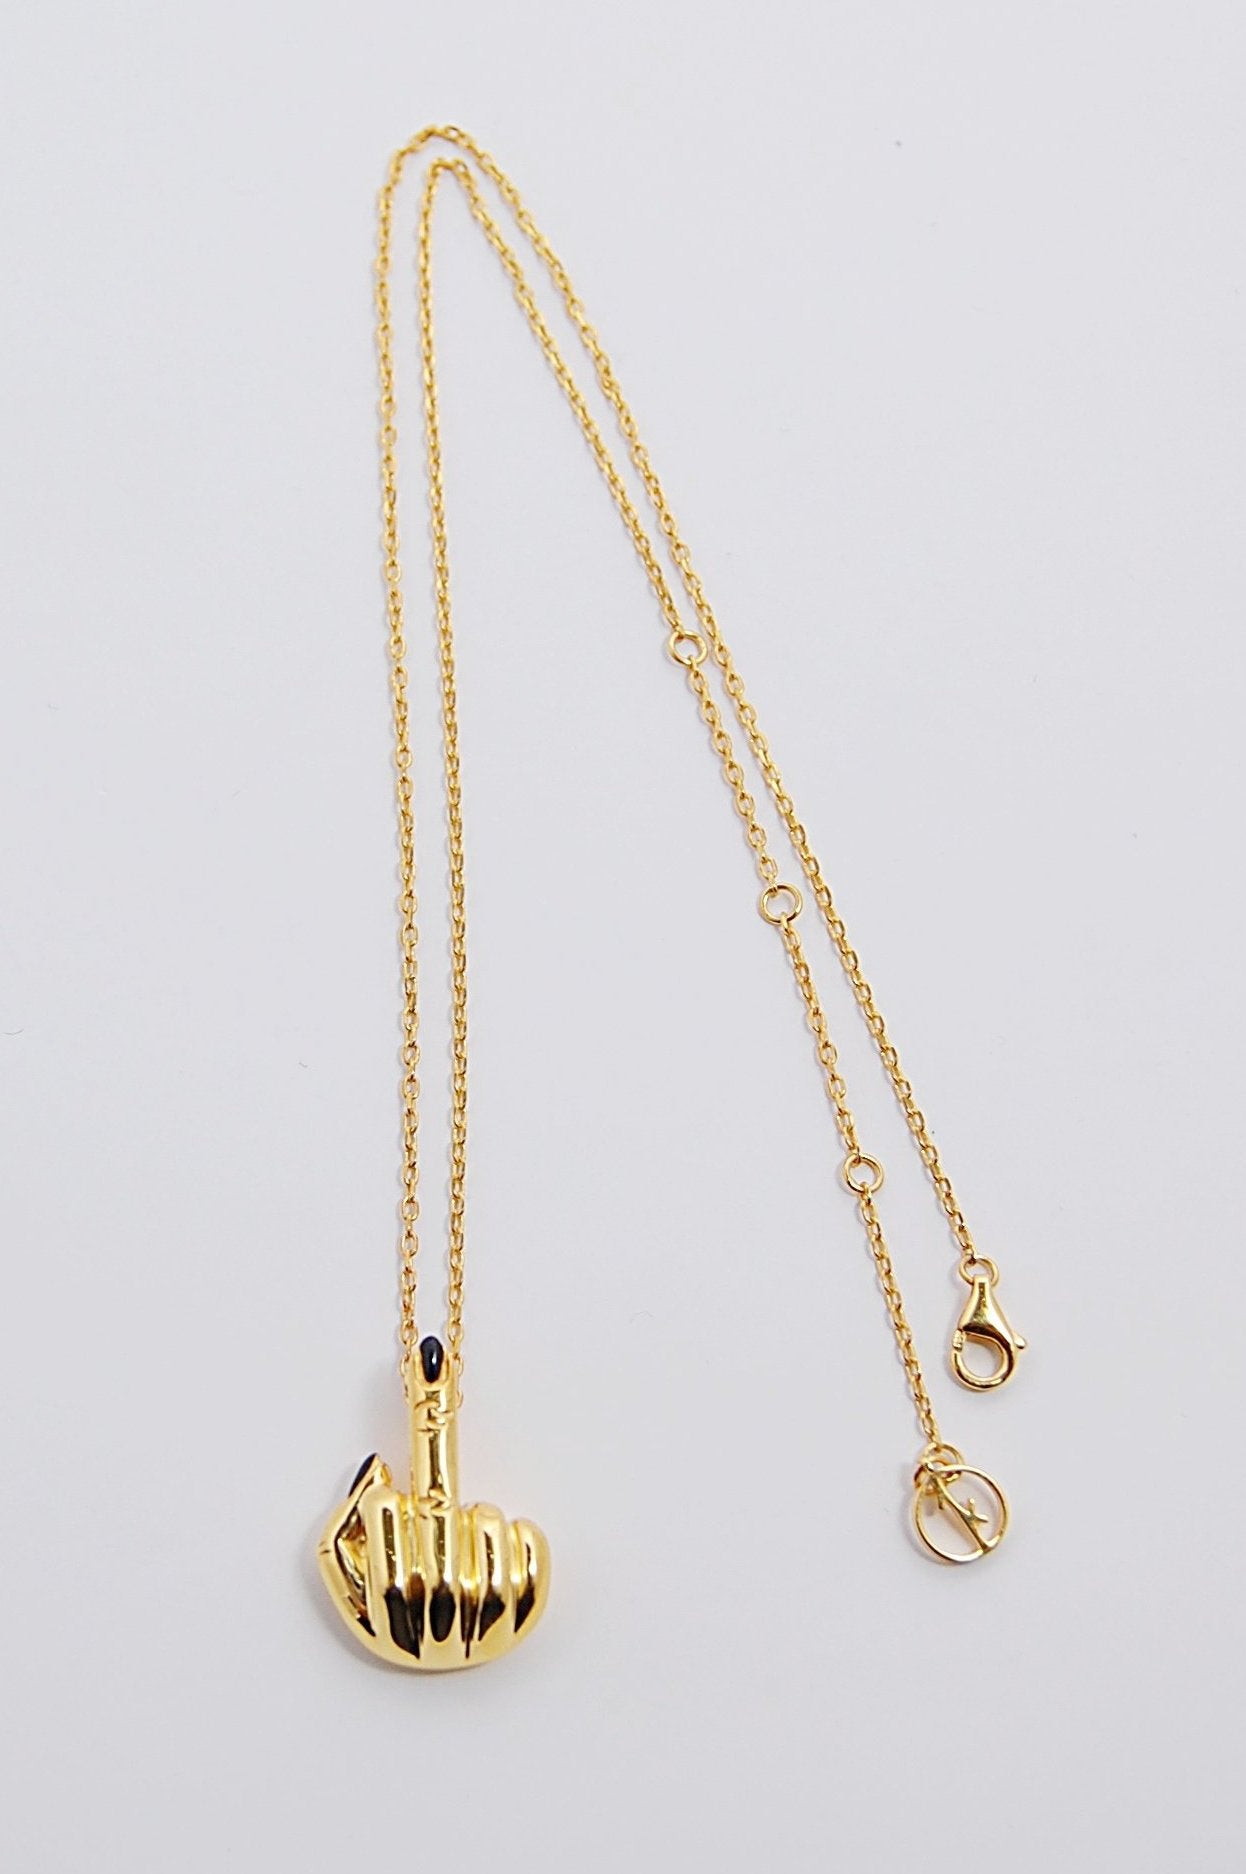 French For Goodnight pendant necklace Anissa Kermiche 4KRk5UMh